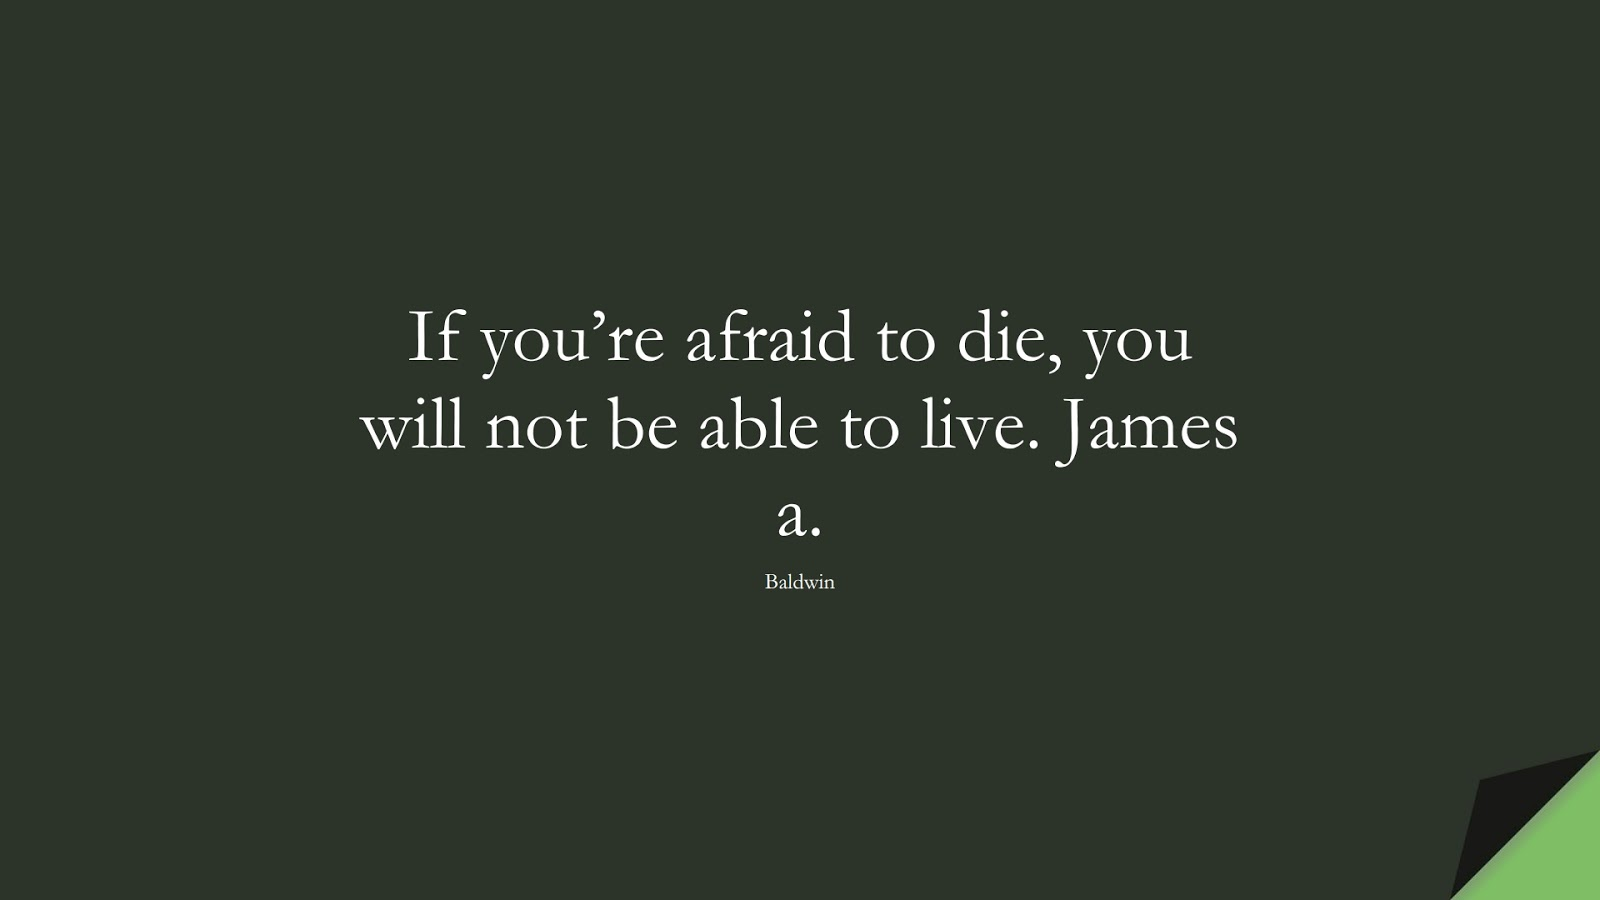 If you're afraid to die, you will not be able to live. James a. (Baldwin);  #InspirationalQuotes